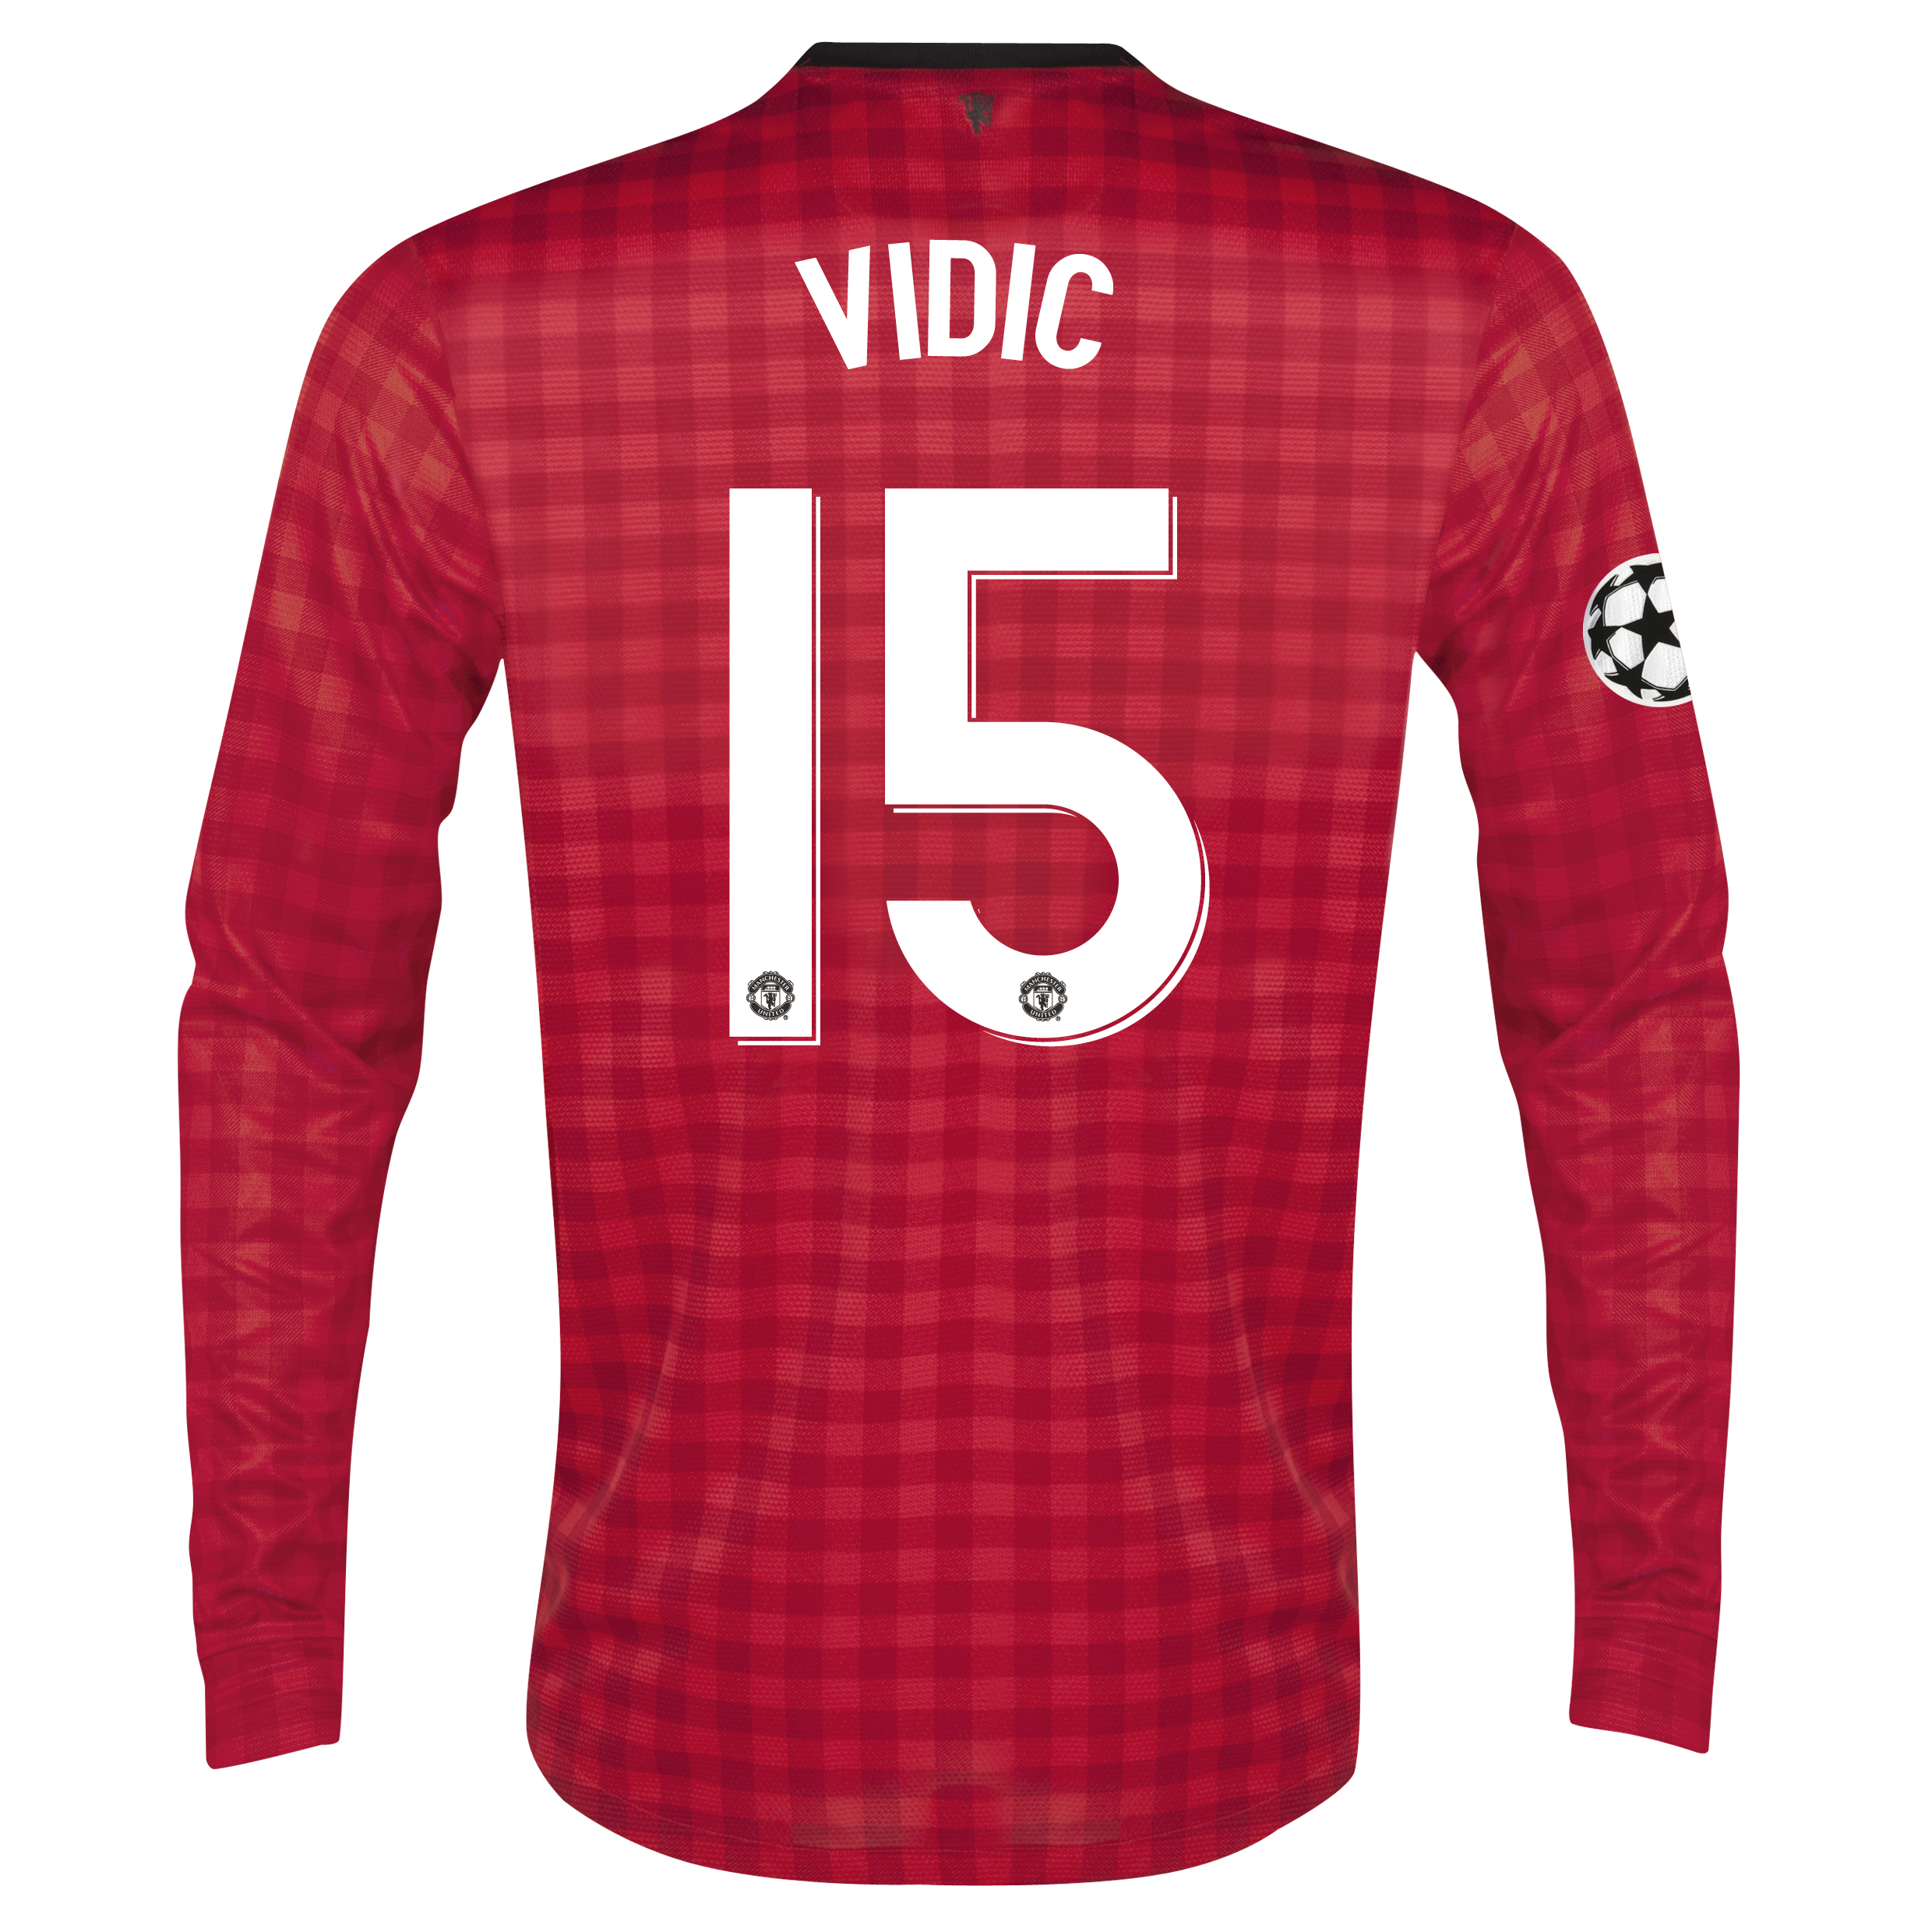 Man United UEFA Champions League Home Shirt 2012/13 - Long Sleeved with Vidic 15 printing